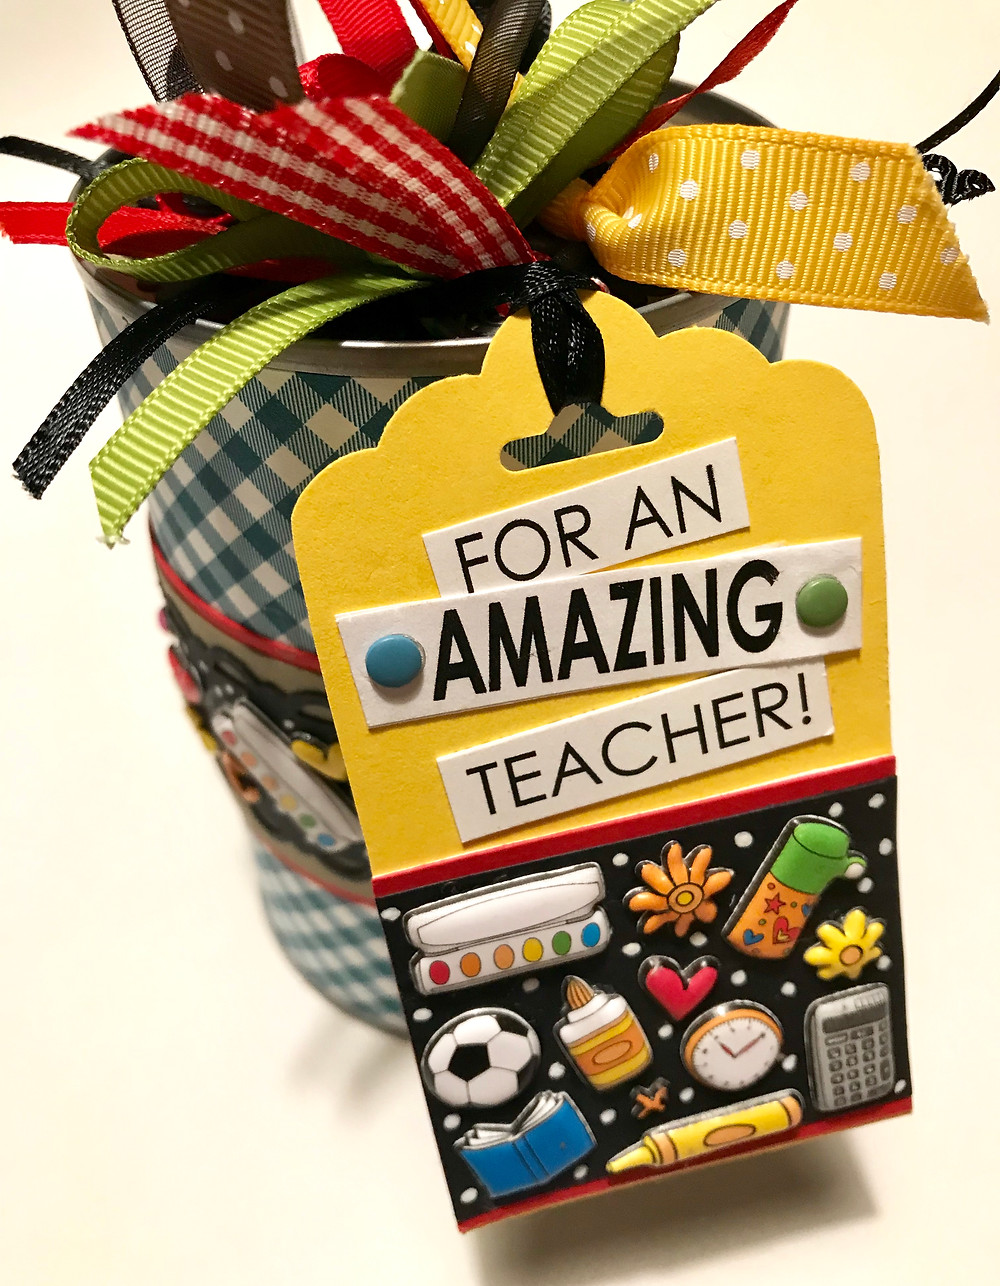 Tag on can with lots of colorful ribbon ties / Teacher Appreciation Gift-in-a-Can / HoneycombOasis.com